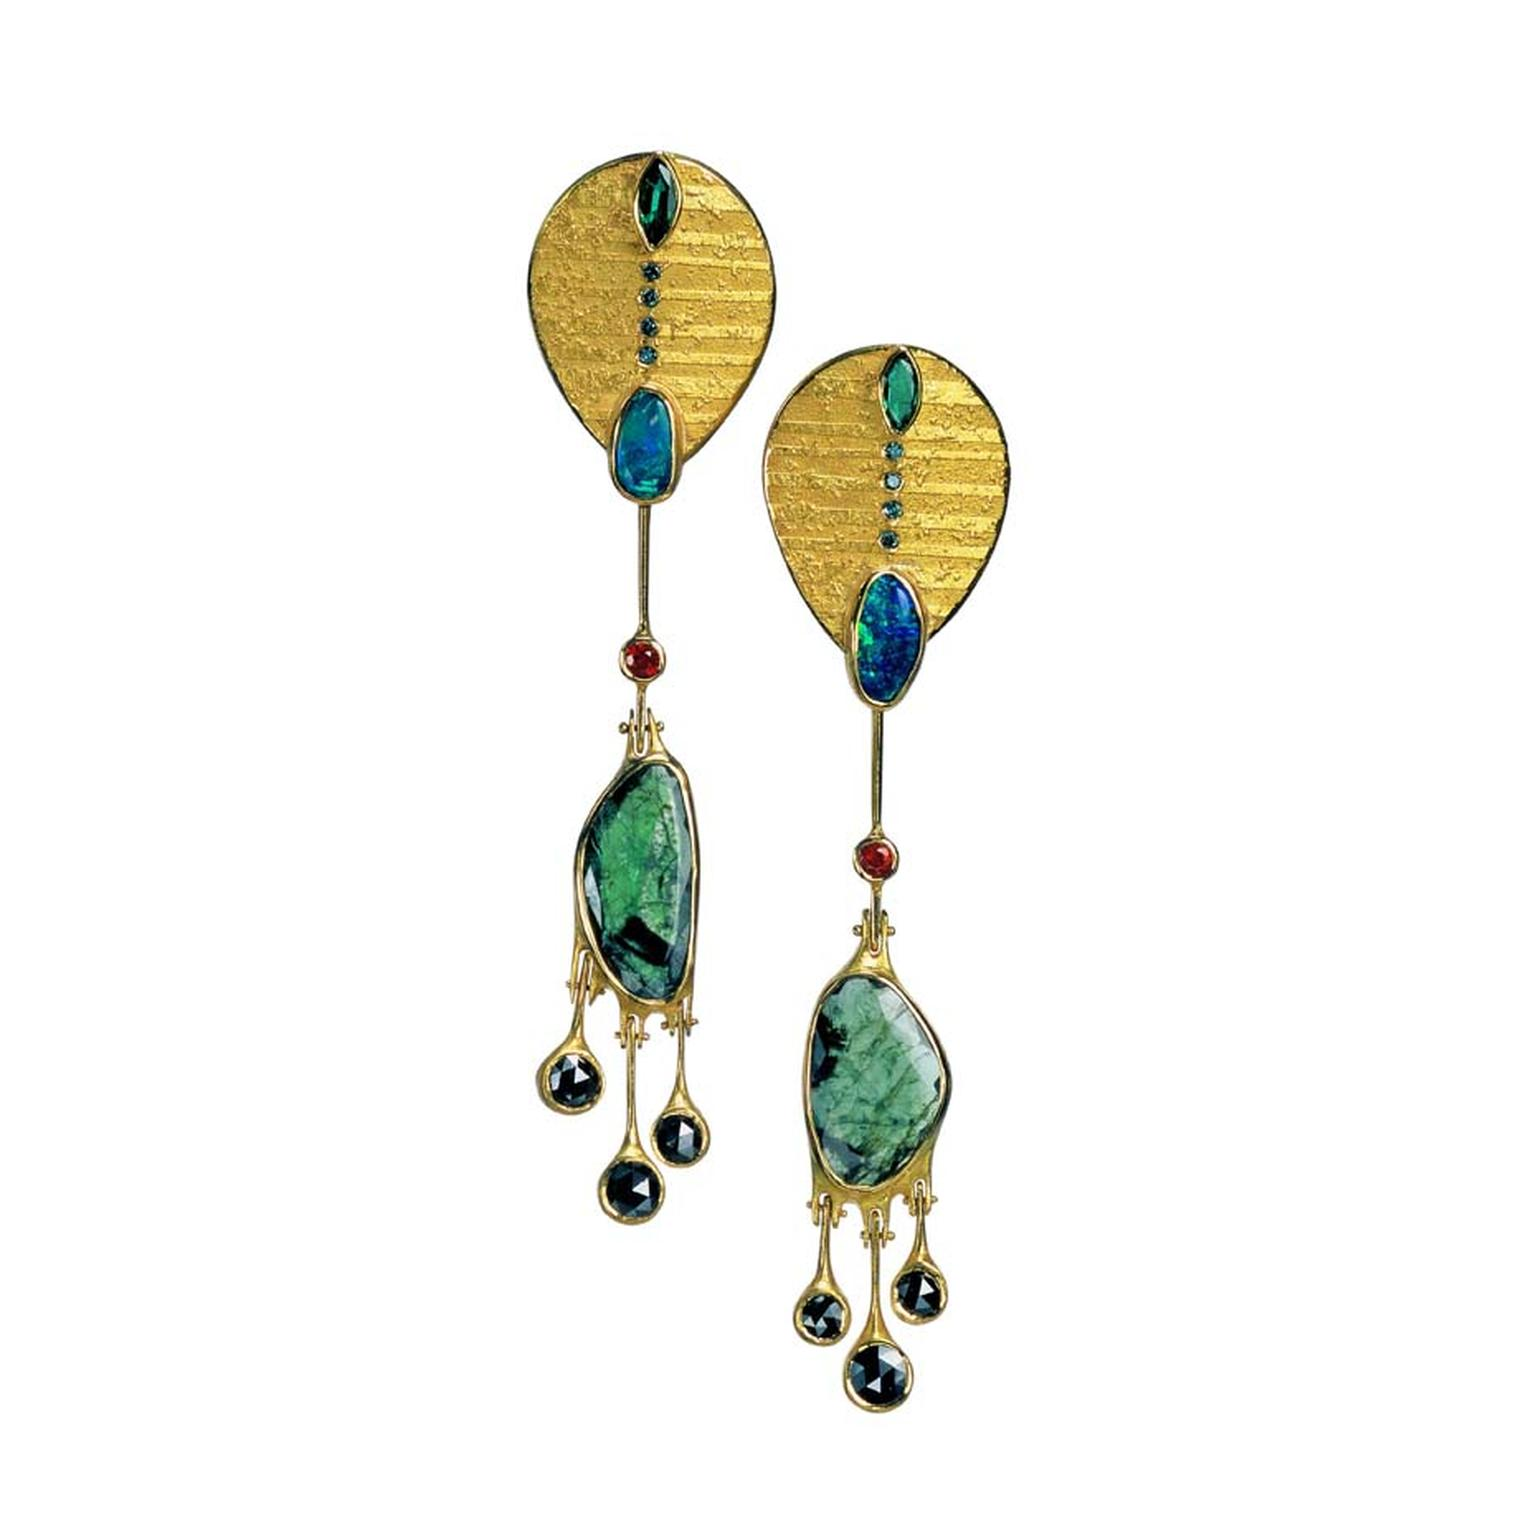 Atelier Zobel earrings in gold with emerald discs, black diamonds, emeralds, rubies, opals and blue diamonds.